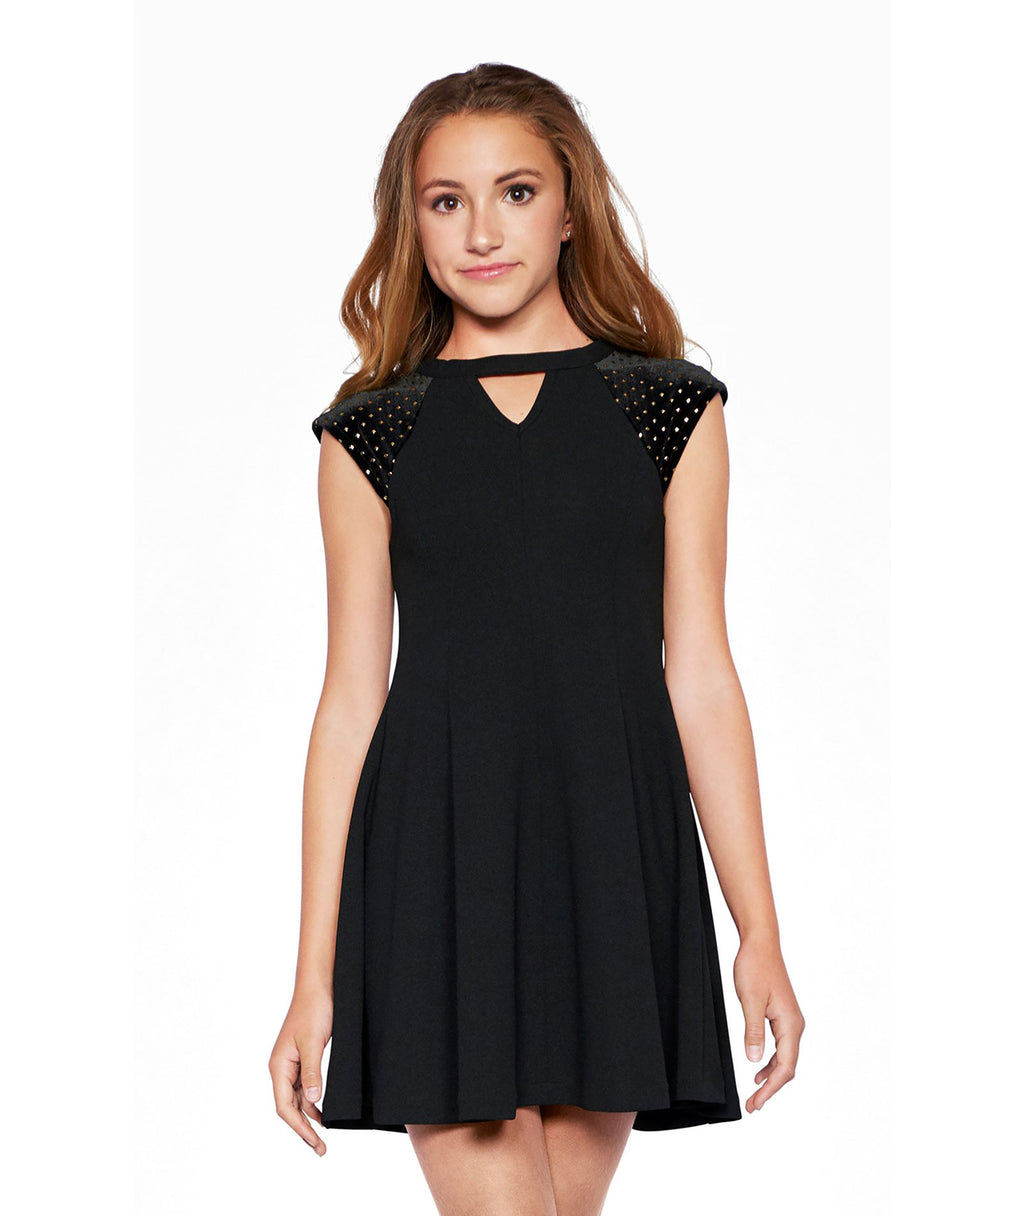 Sally Miller Girls Aria Dress